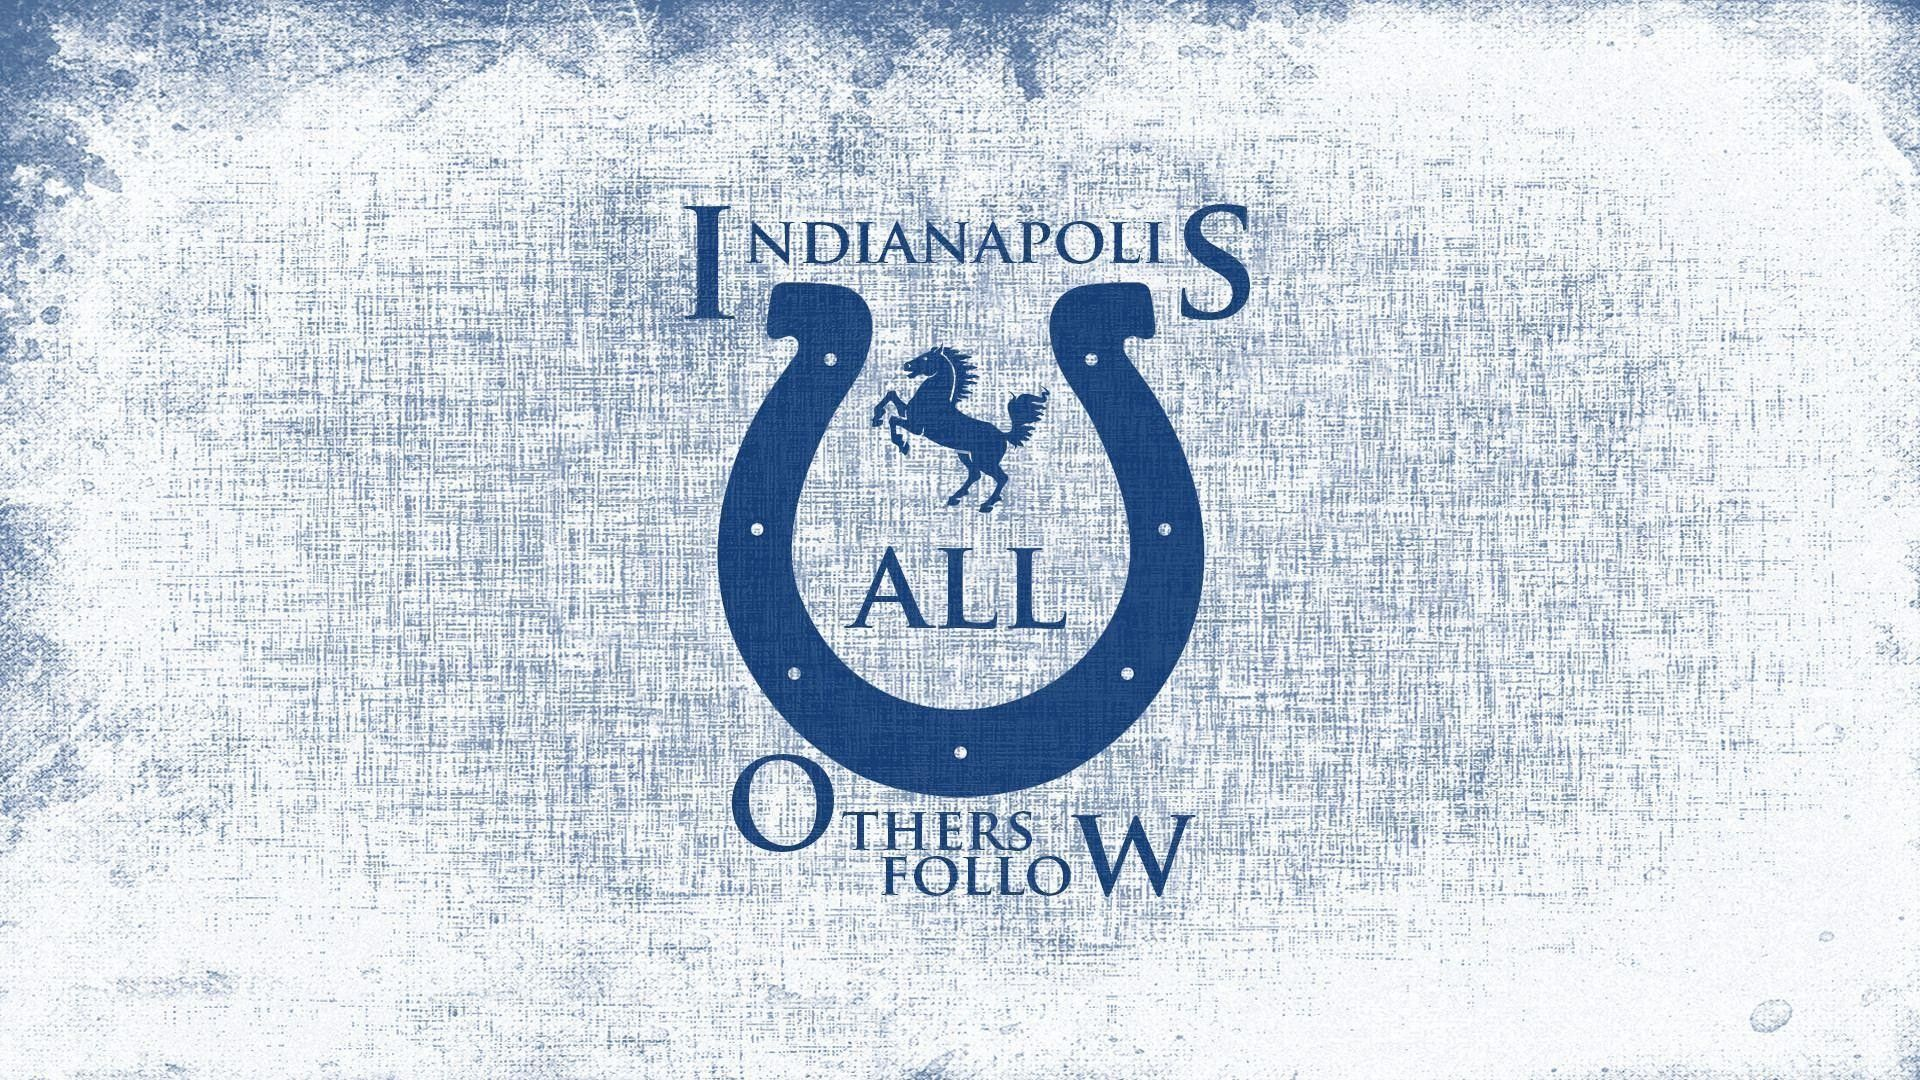 Hd Indianapolis Colts Wallpapers 2020 Nfl Football Wallpapers Nfl Football Wallpaper Indianapolis Colts Nfl